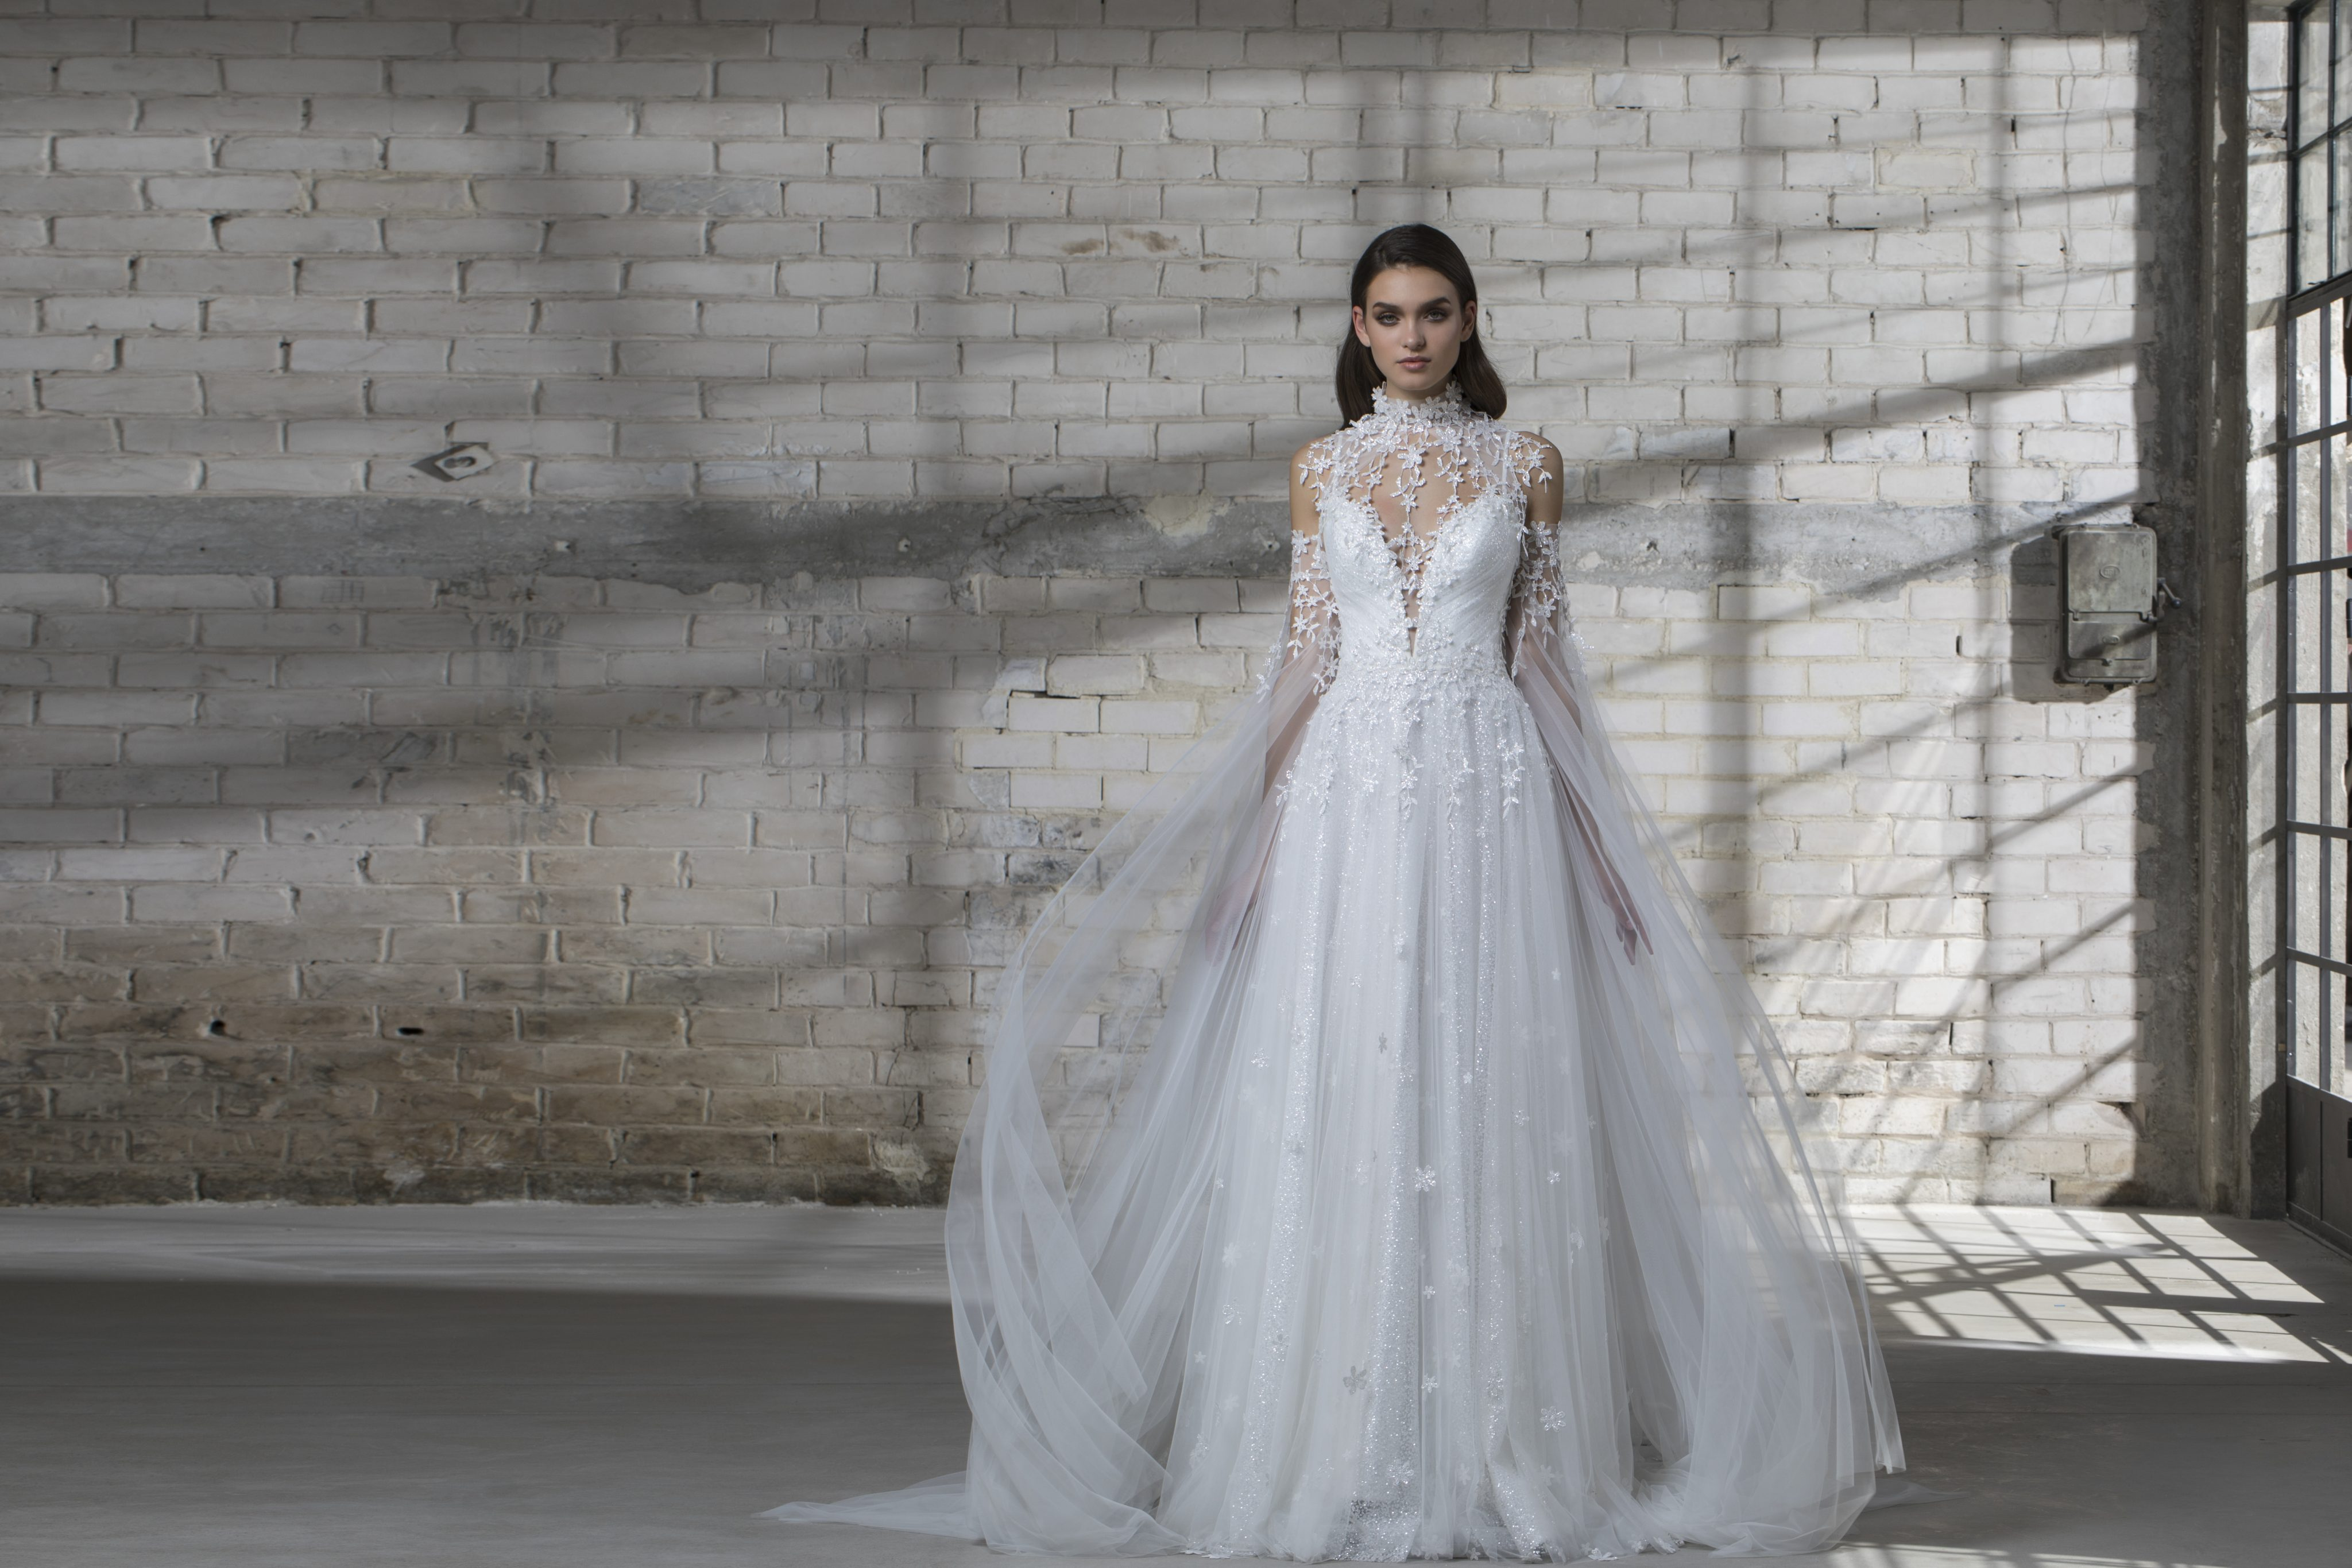 Spaghetti Strap A-line Wedding Dress With Tulle Skirt